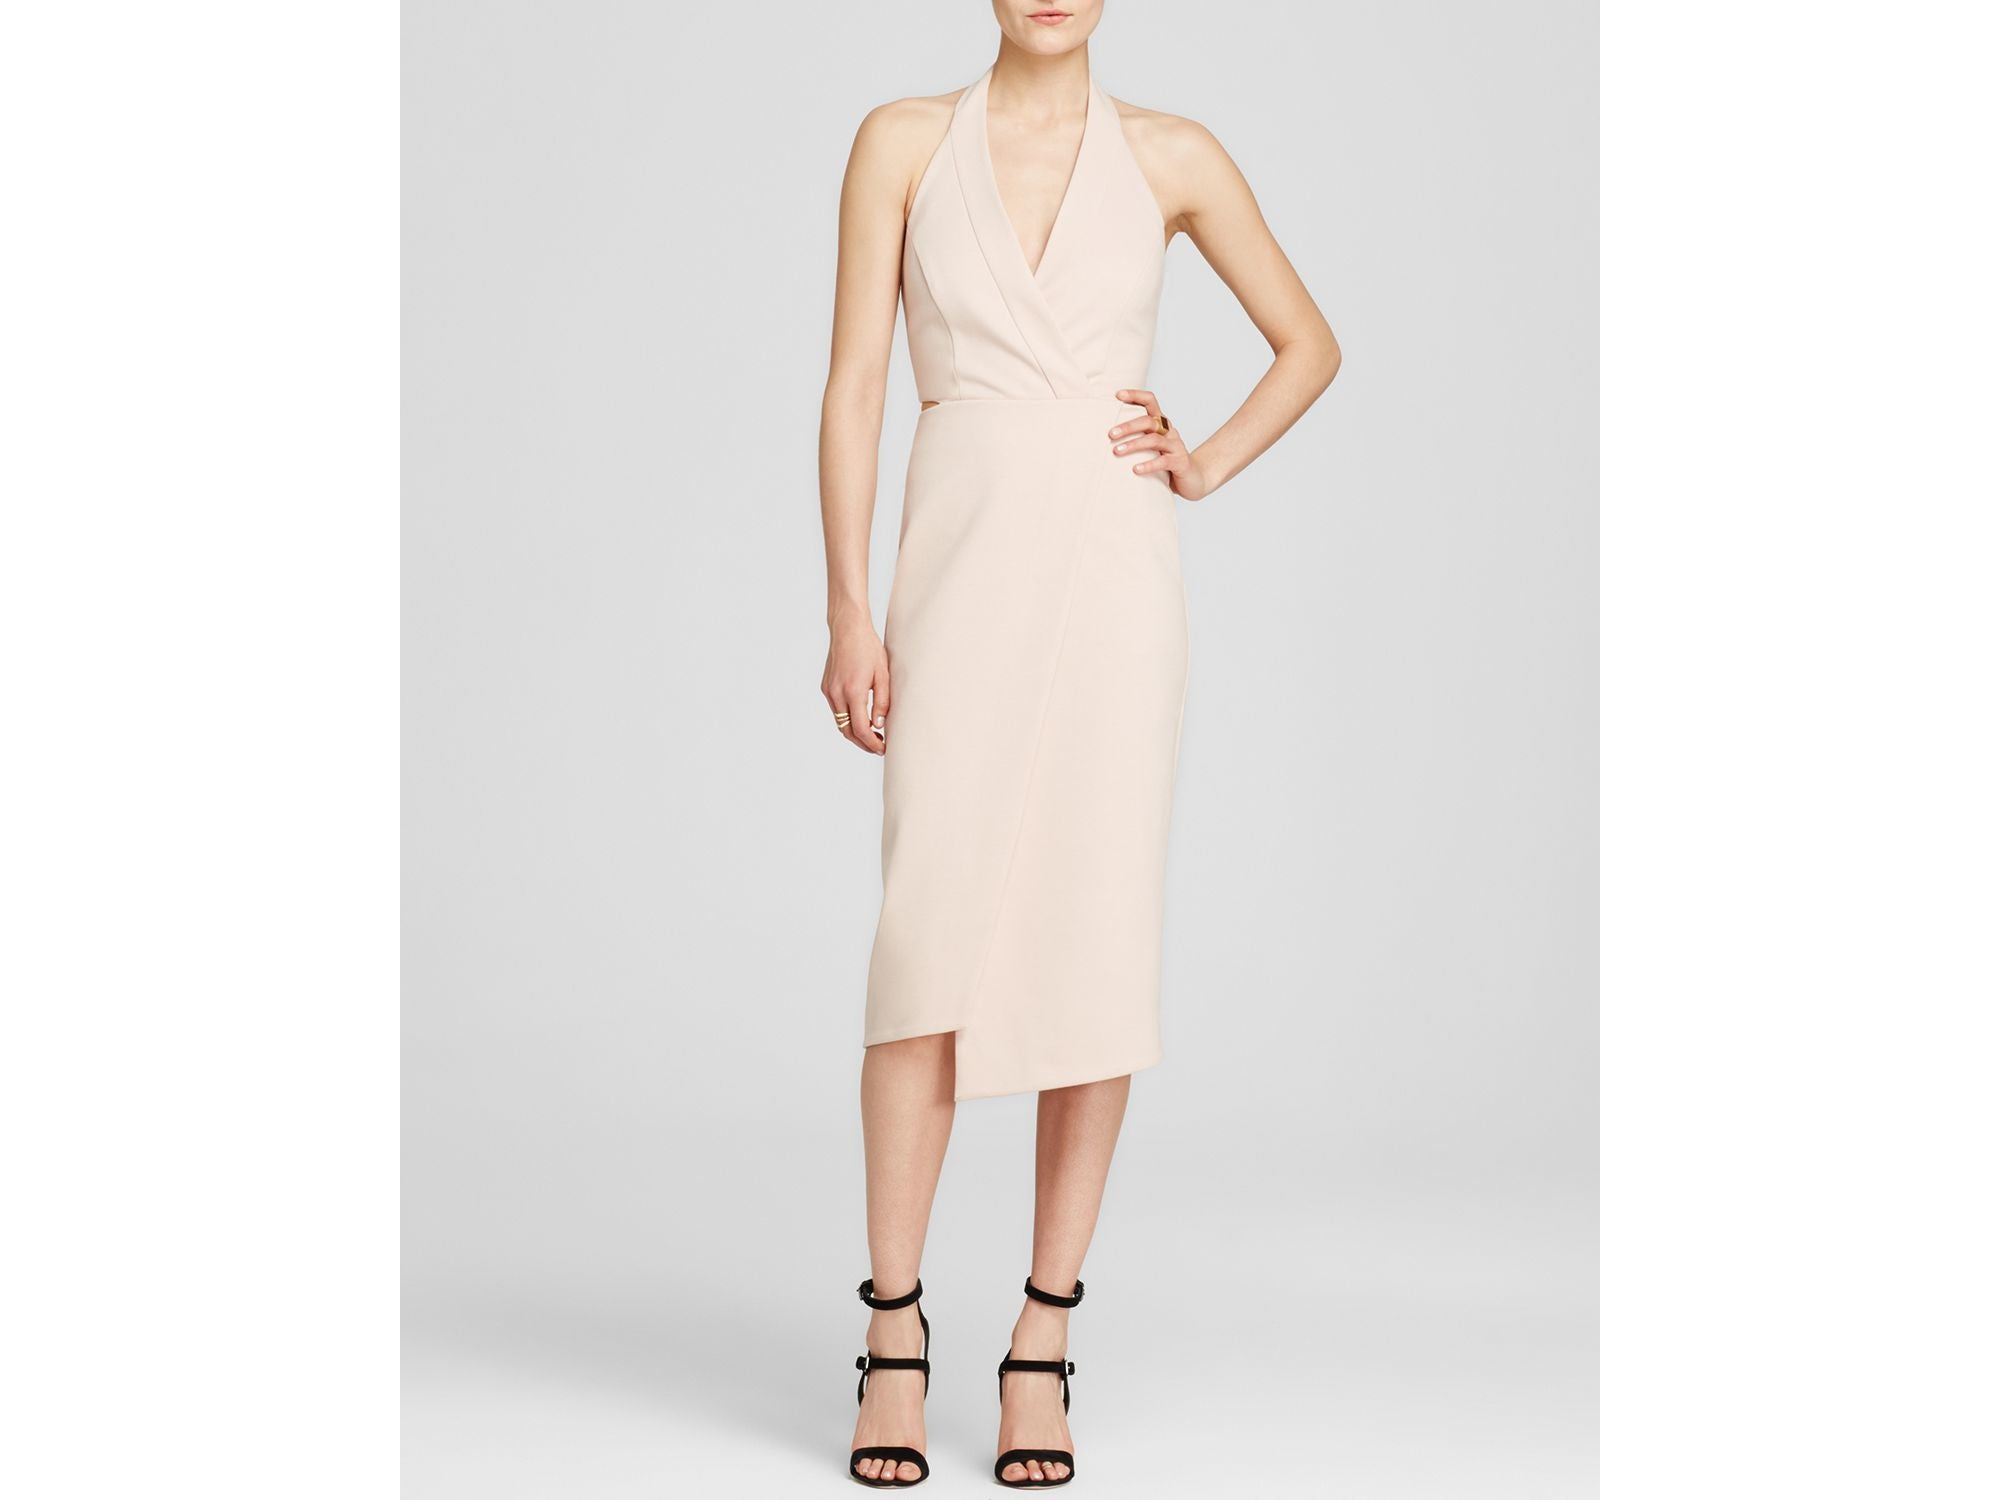 SLEEVELESS PONTI DRESS